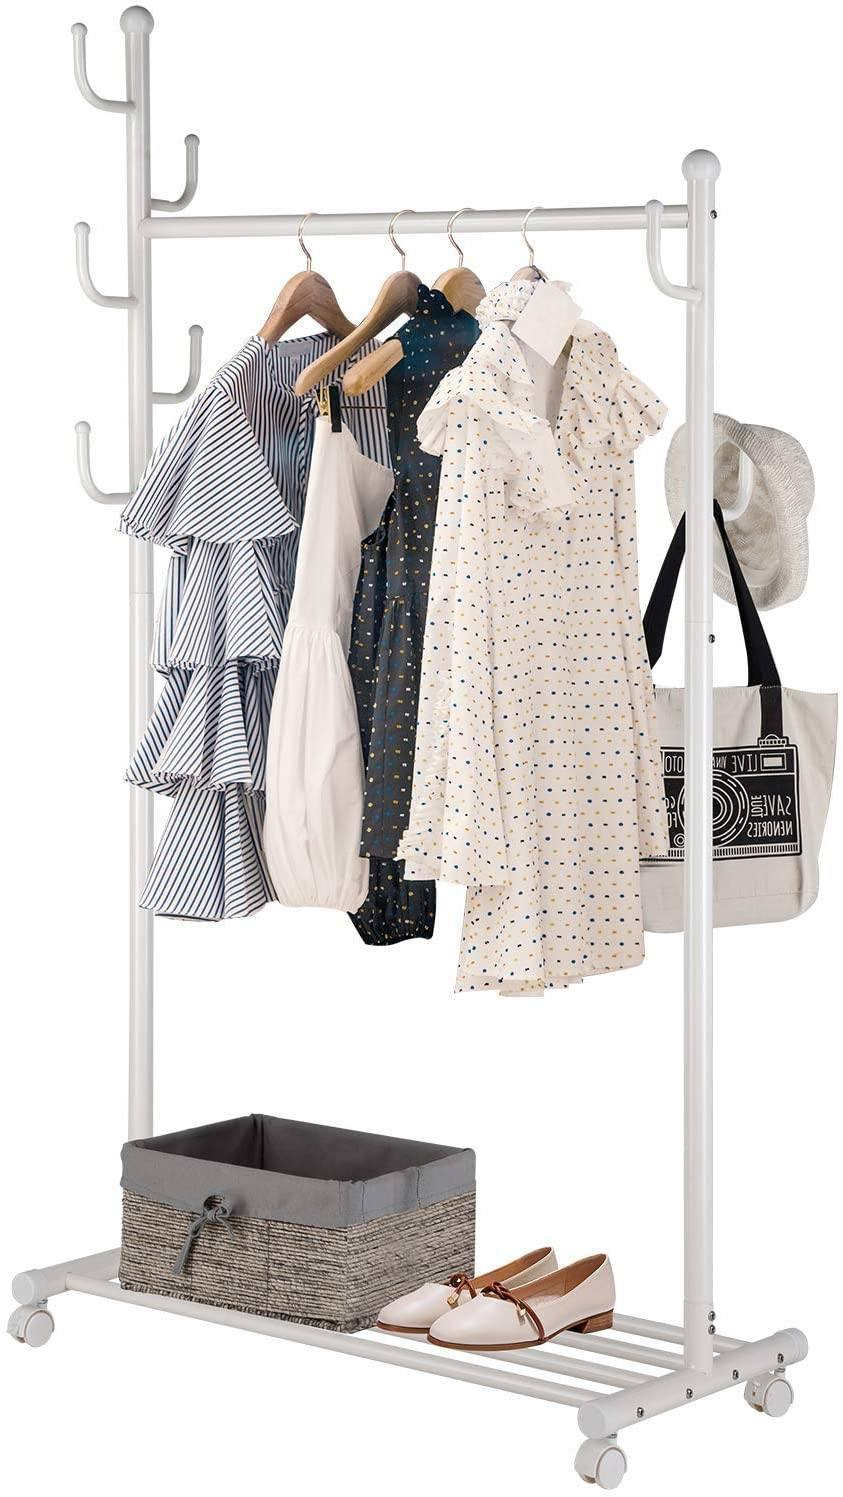 Amazon: 2-in-1 Coat Rack for only $19.99 ($39.99)